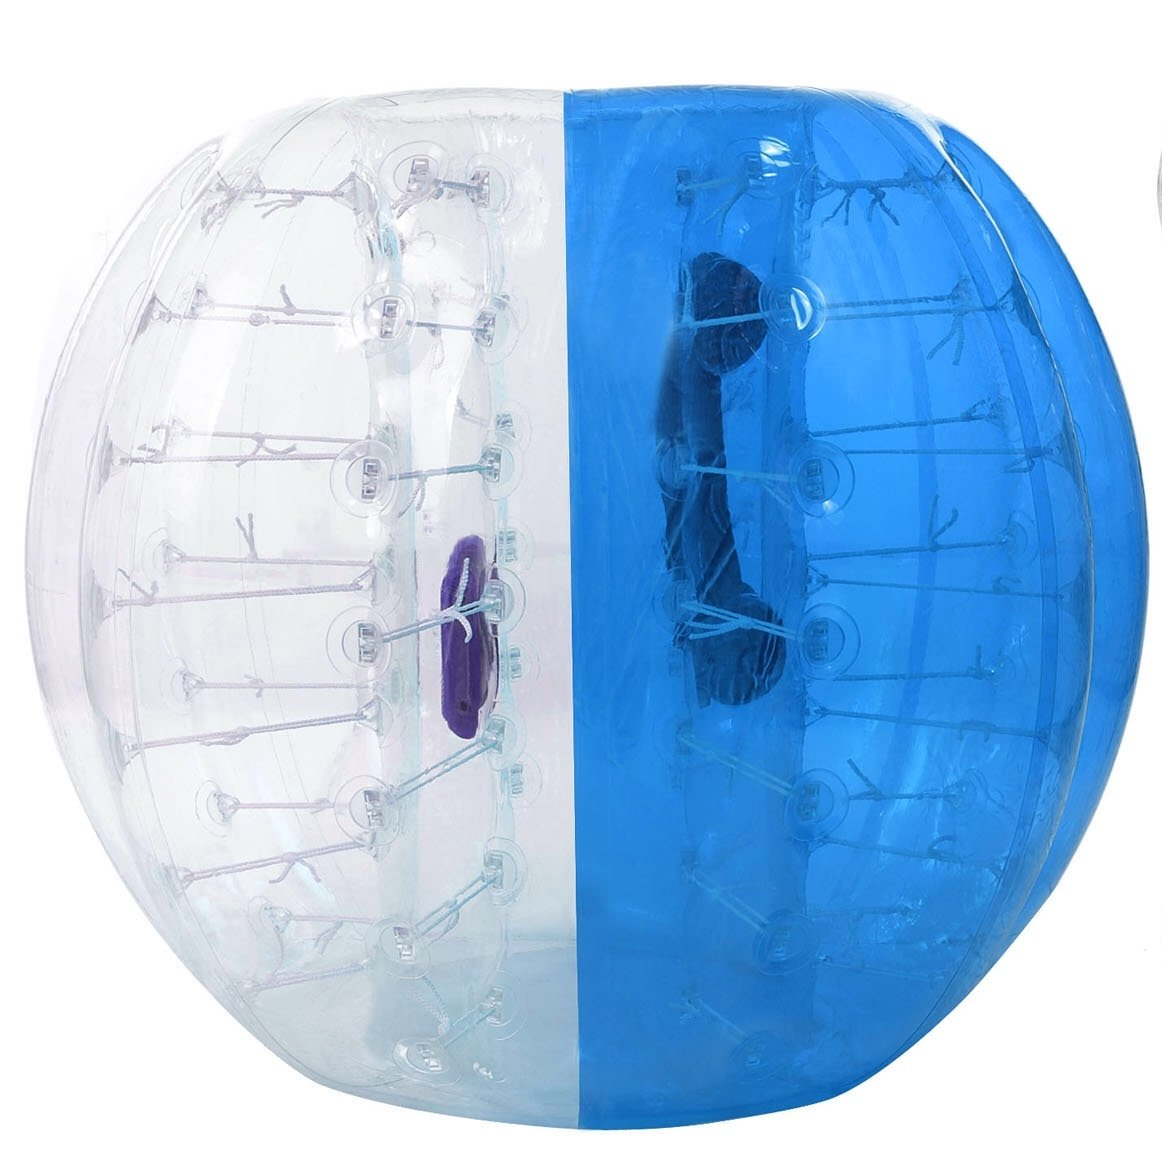 Oanon Inflatable Bumper Ball 1.2M 4FT/1.5M 5FT Diameter Bubble Soccer Ball Blow Up Toy, Inflatable Bumper Bubble Balls for Childs,Teens,Adults (White/Blue 1,5M) by Oanon